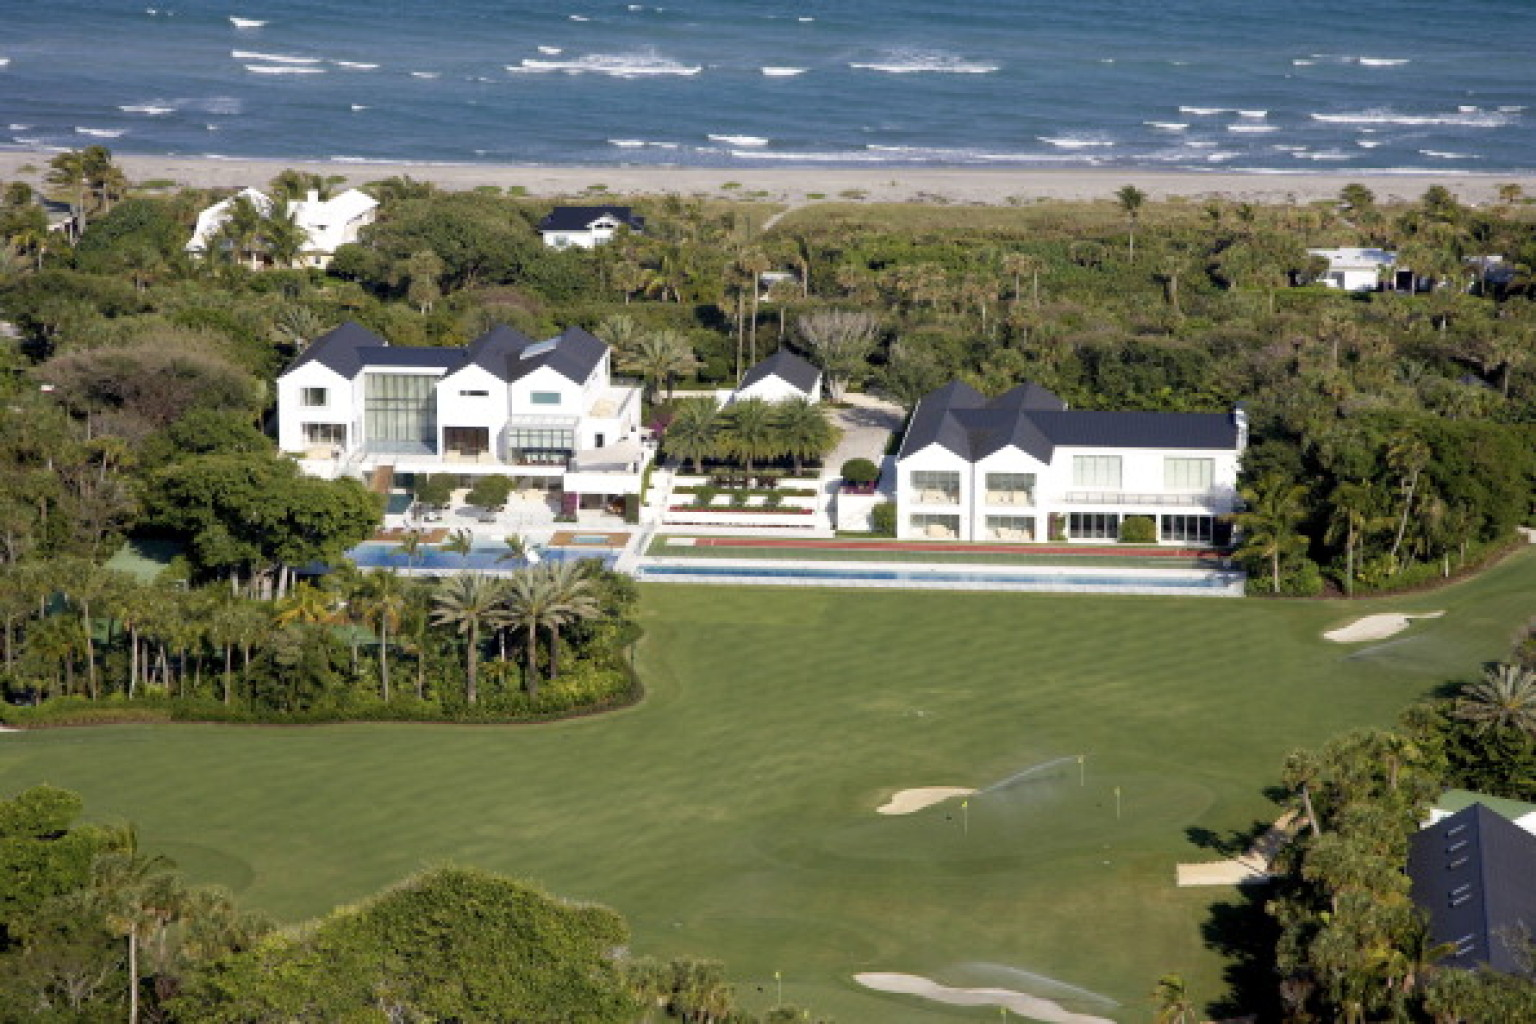 Tiger woods 39 jupiter island mansion in florida 39 is sinking Images of tiger woods house